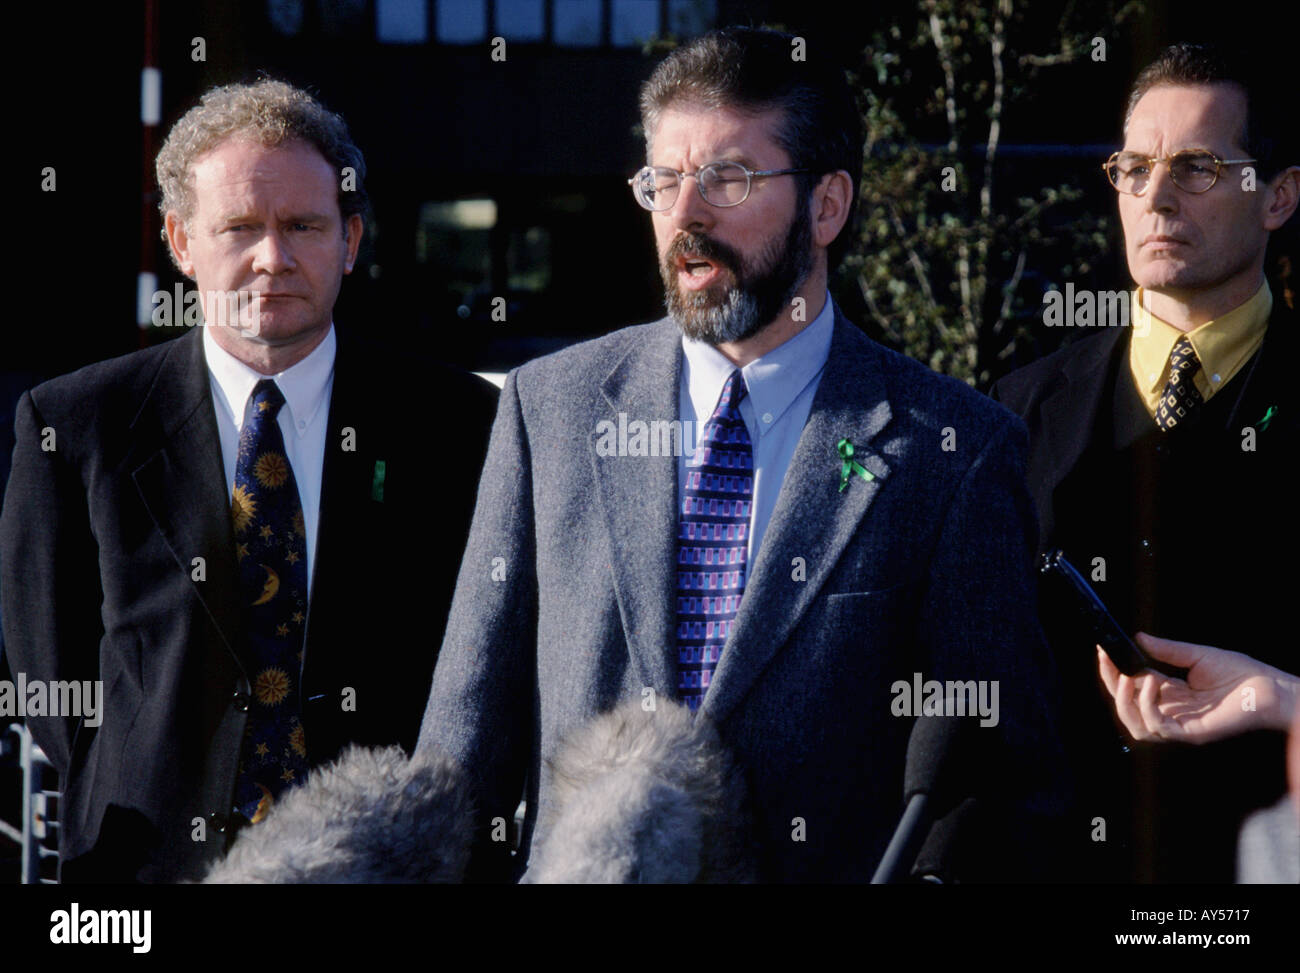 Gerry Adams, Martin mc guinness ,Gerry Kelly during the press conferance - Stock Image